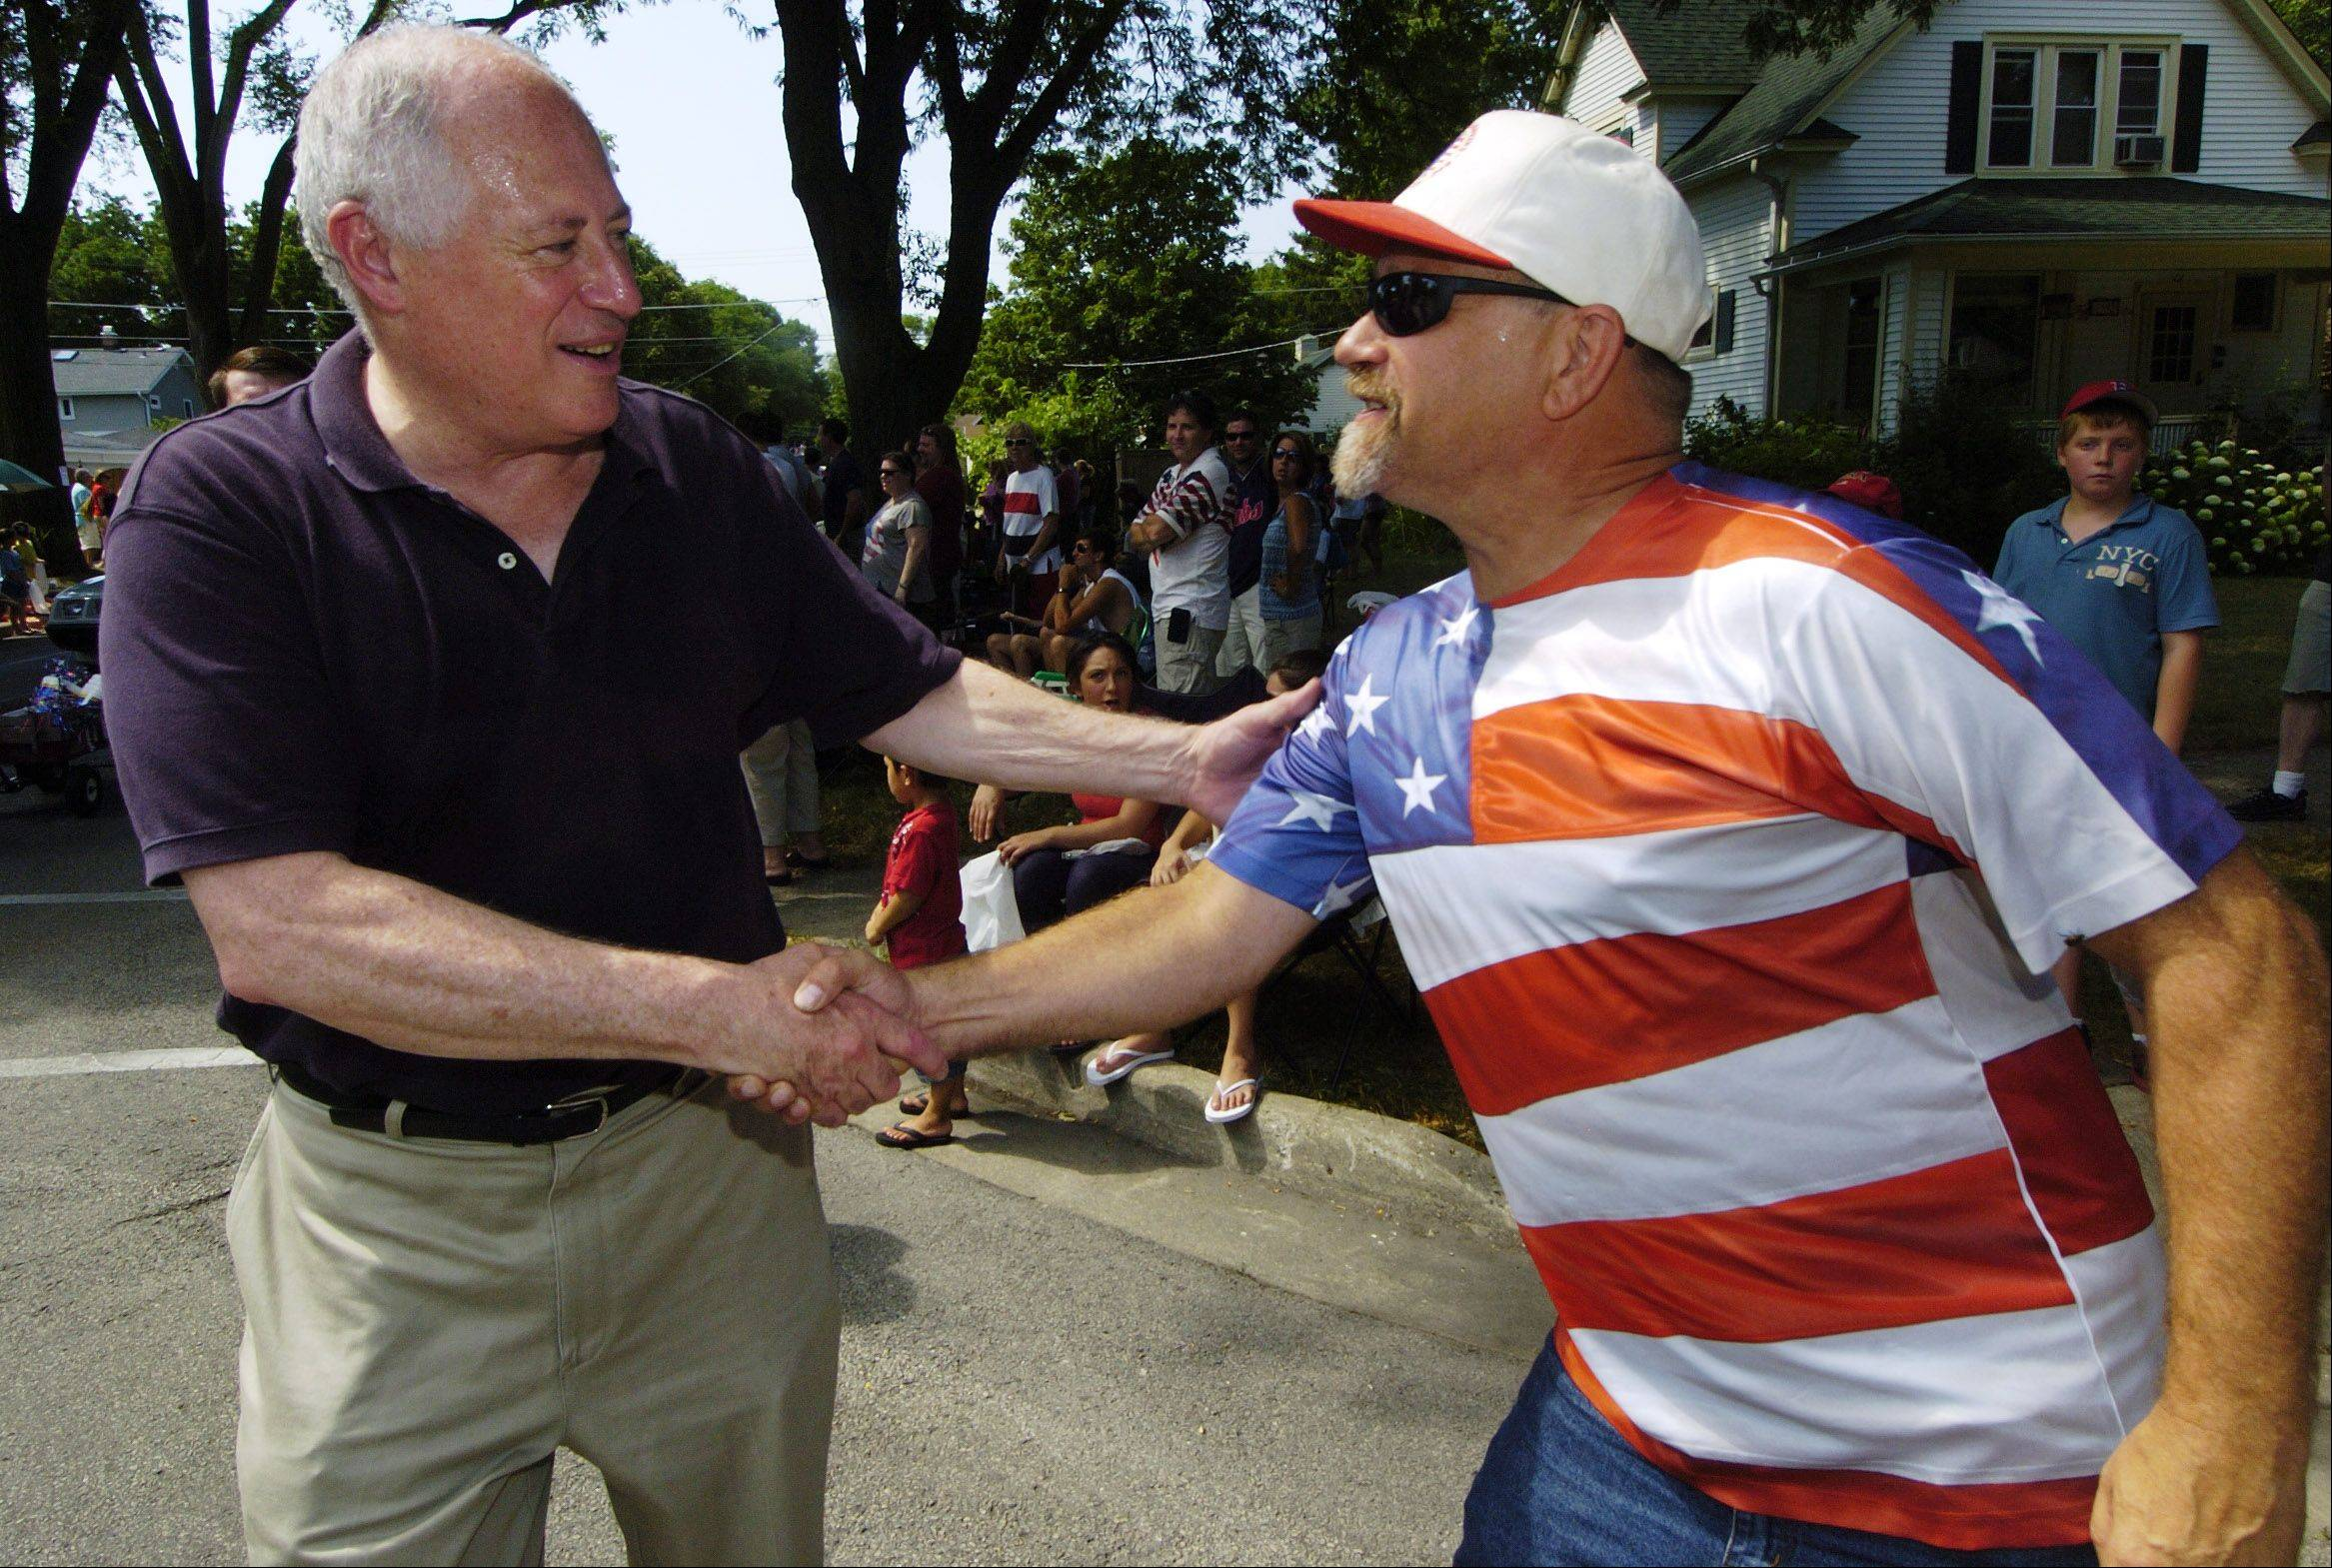 Governor Pat Quinn greets Joel Long of Des Plaines during the Des Plaines Fourth of July parade Wednesday.